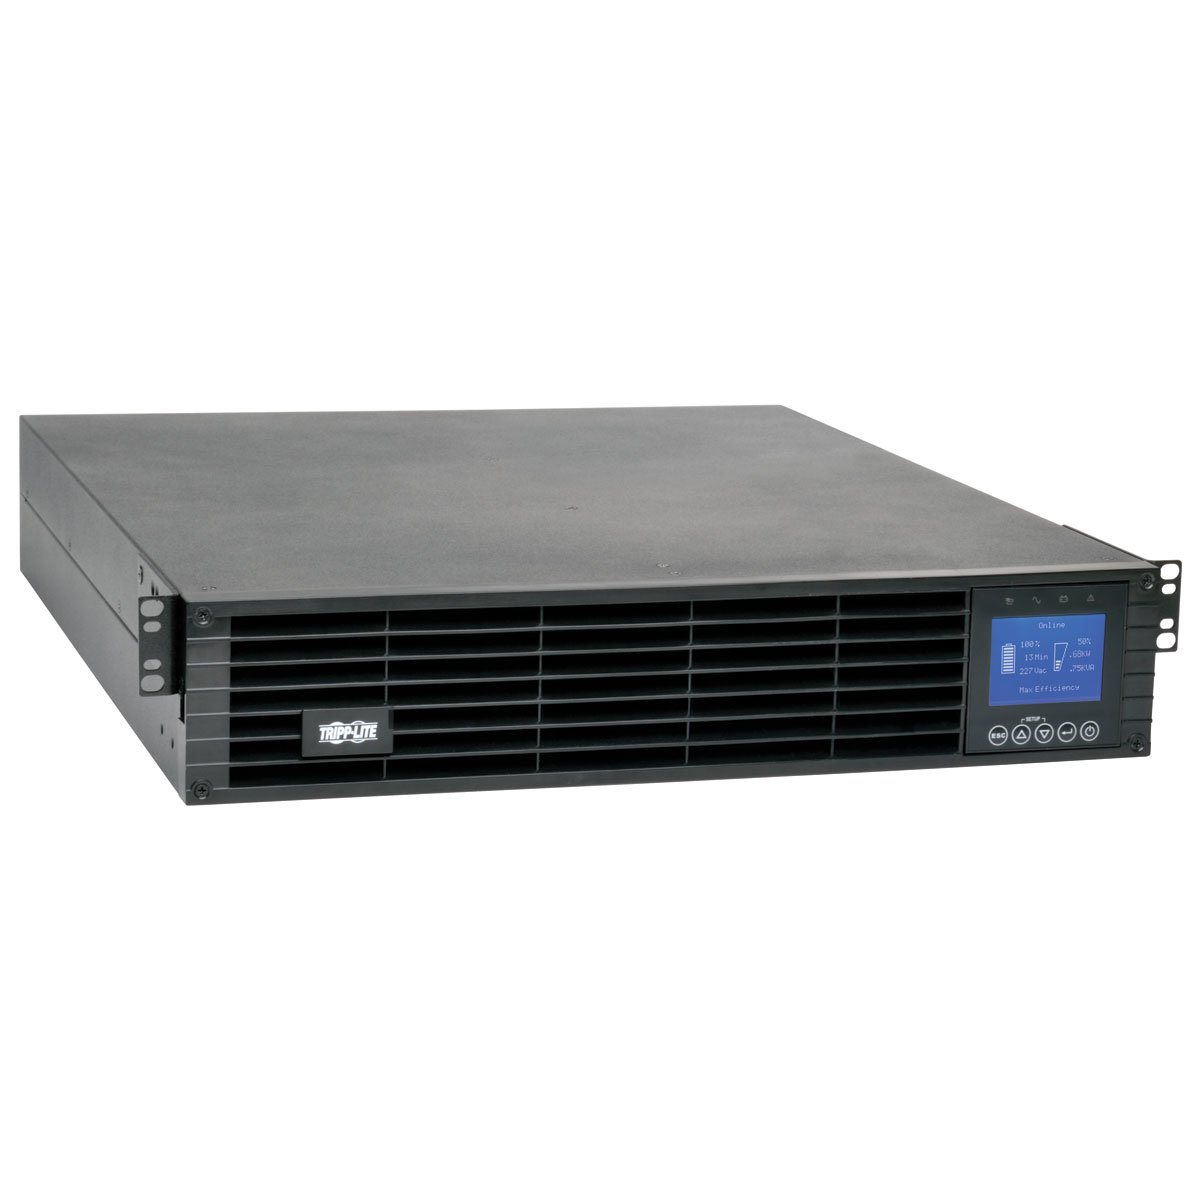 An image of Tripp lite smartonline 1.5kva 1.35kw double-conversion ups, 208v / 230v, 2u, ext...